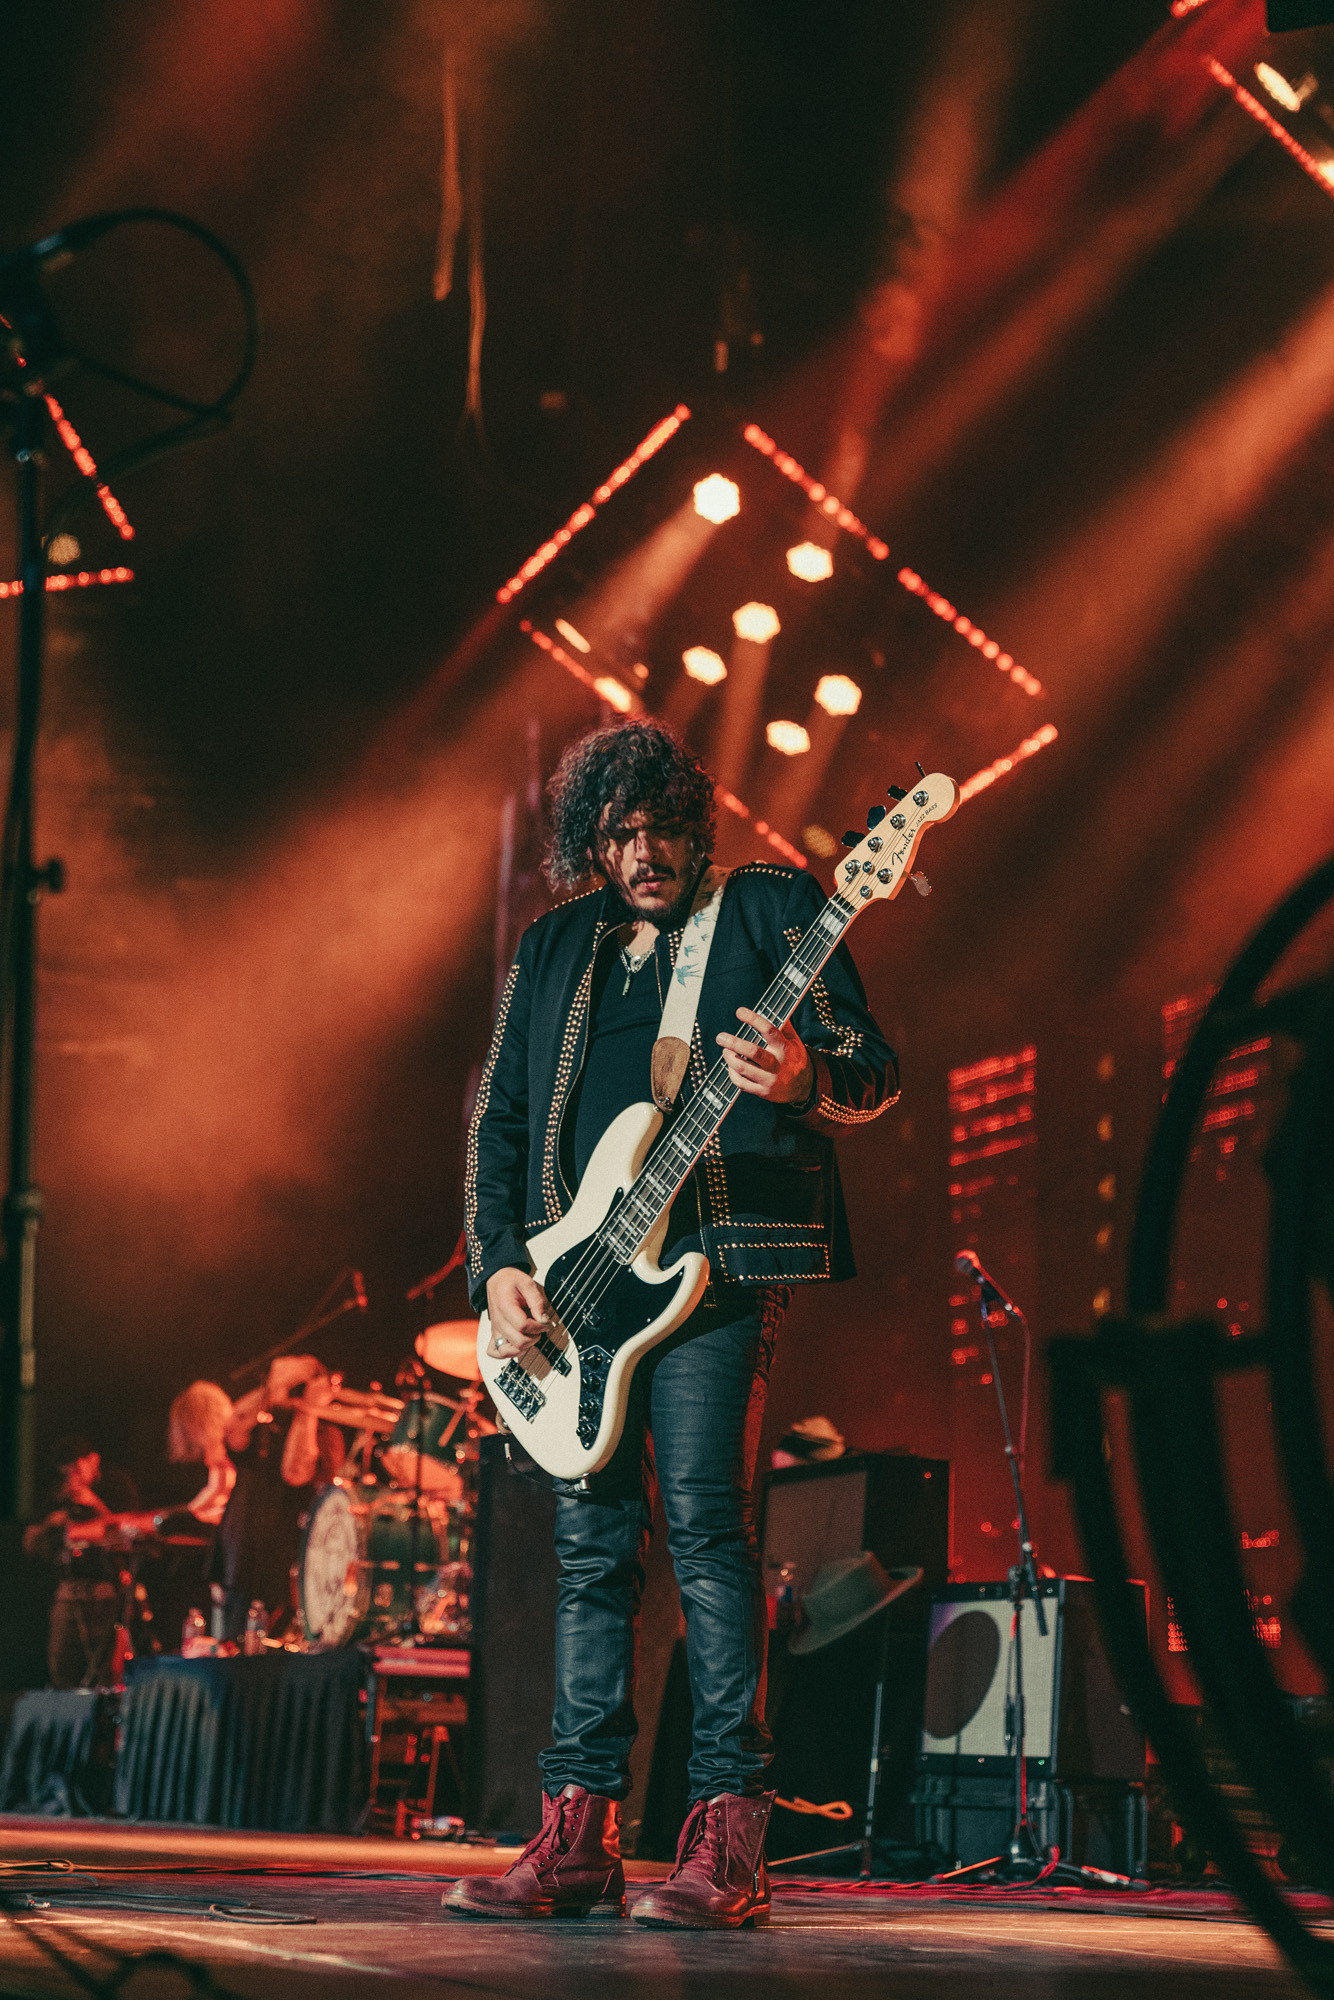 Born_Razed_Beaches_Glorious_Sons_Scotiabank_Arena_Live_61.jpg